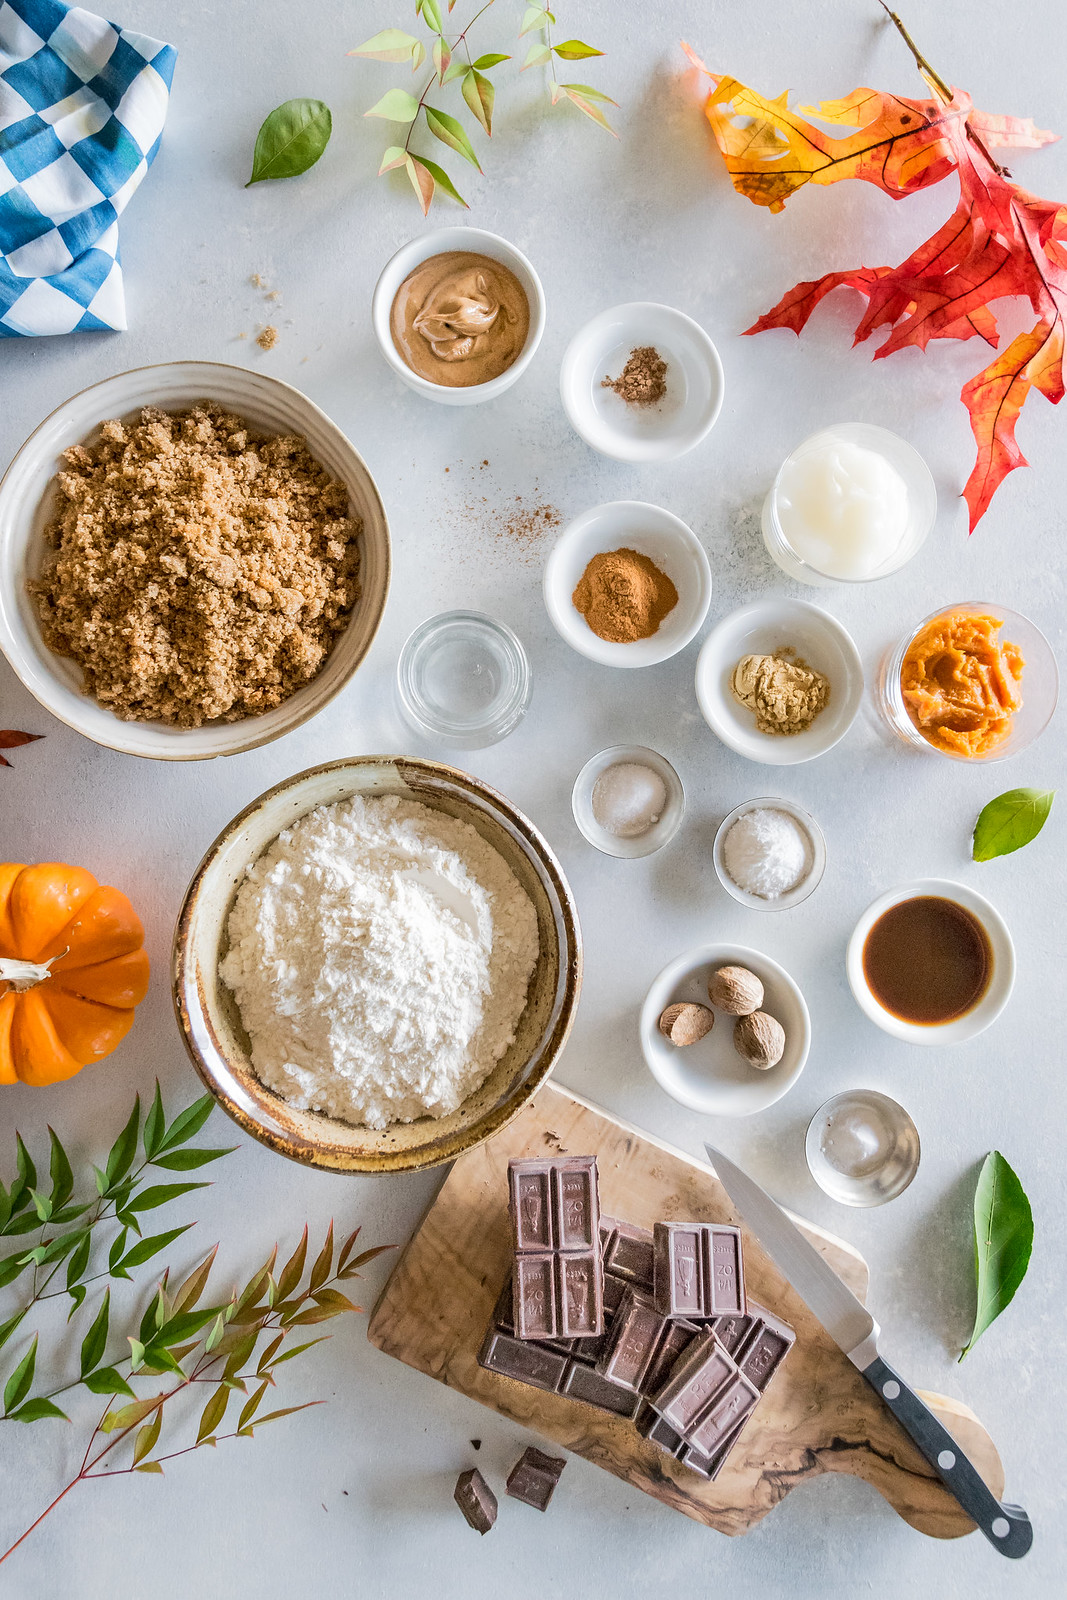 it's October, so let's do some fall baking!